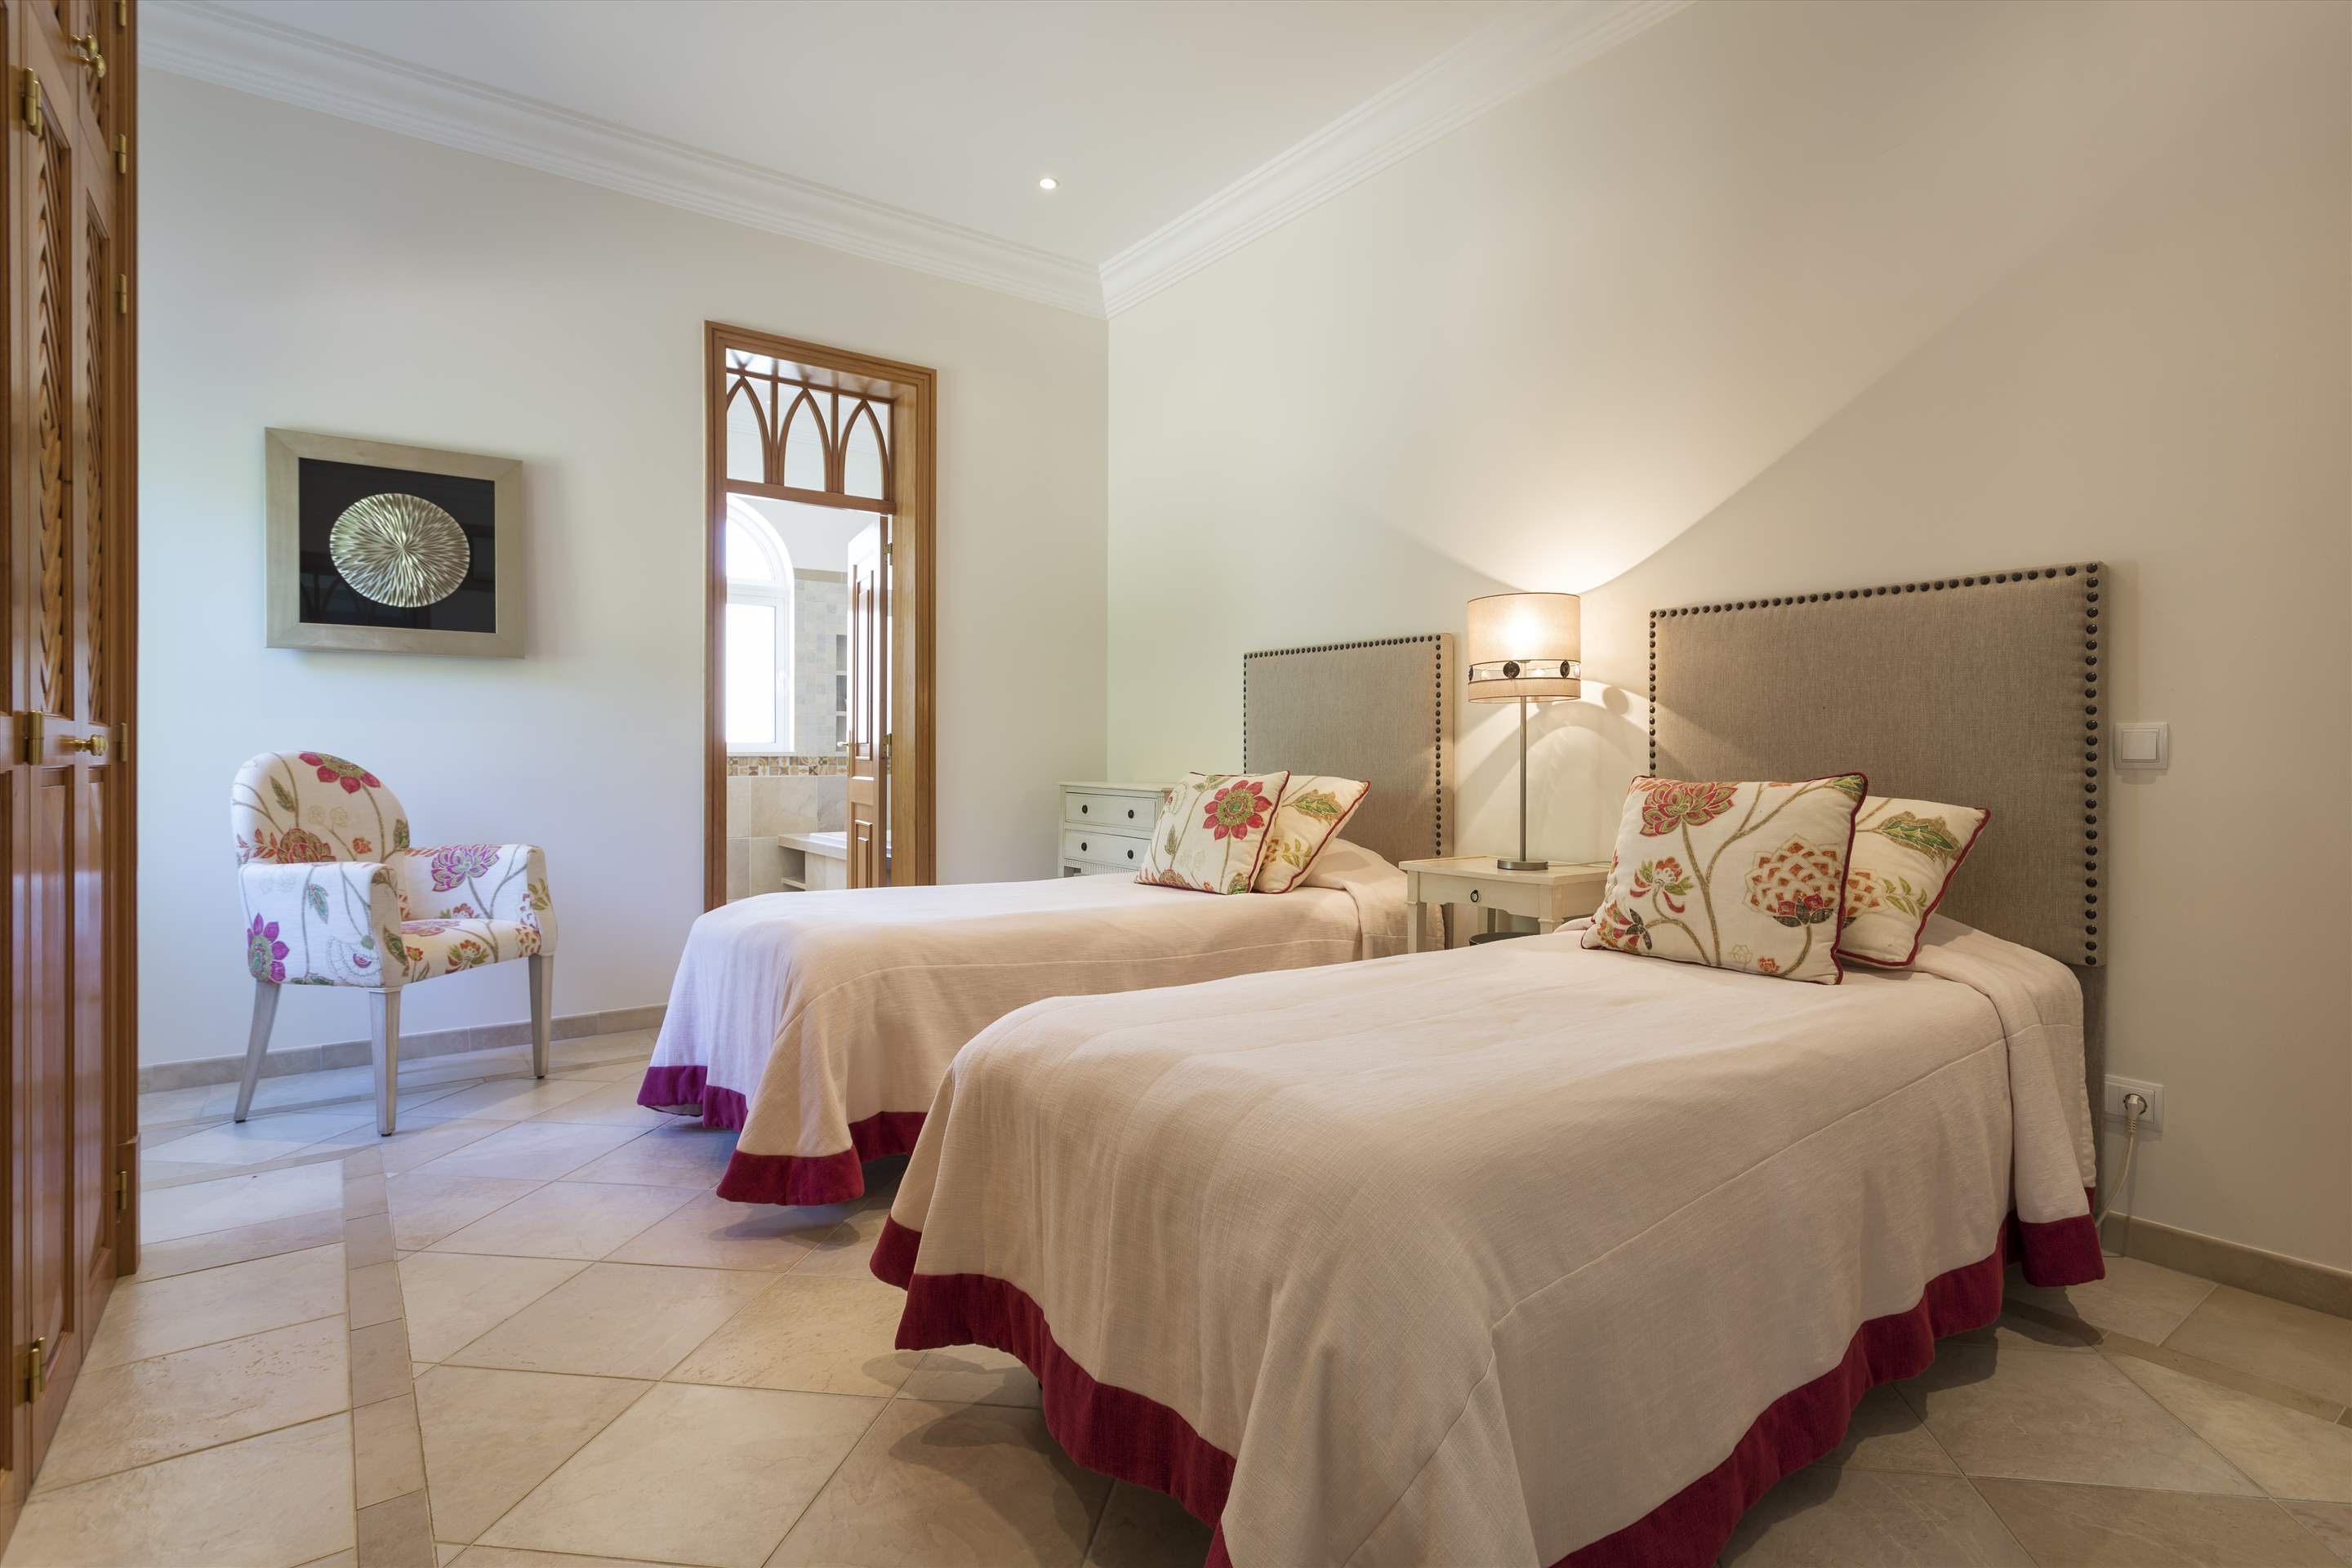 Villa Lantana 2, Main house & Annexe, 6 bedrooms, 6 bedroom villa in Quinta do Lago, Algarve Photo #21